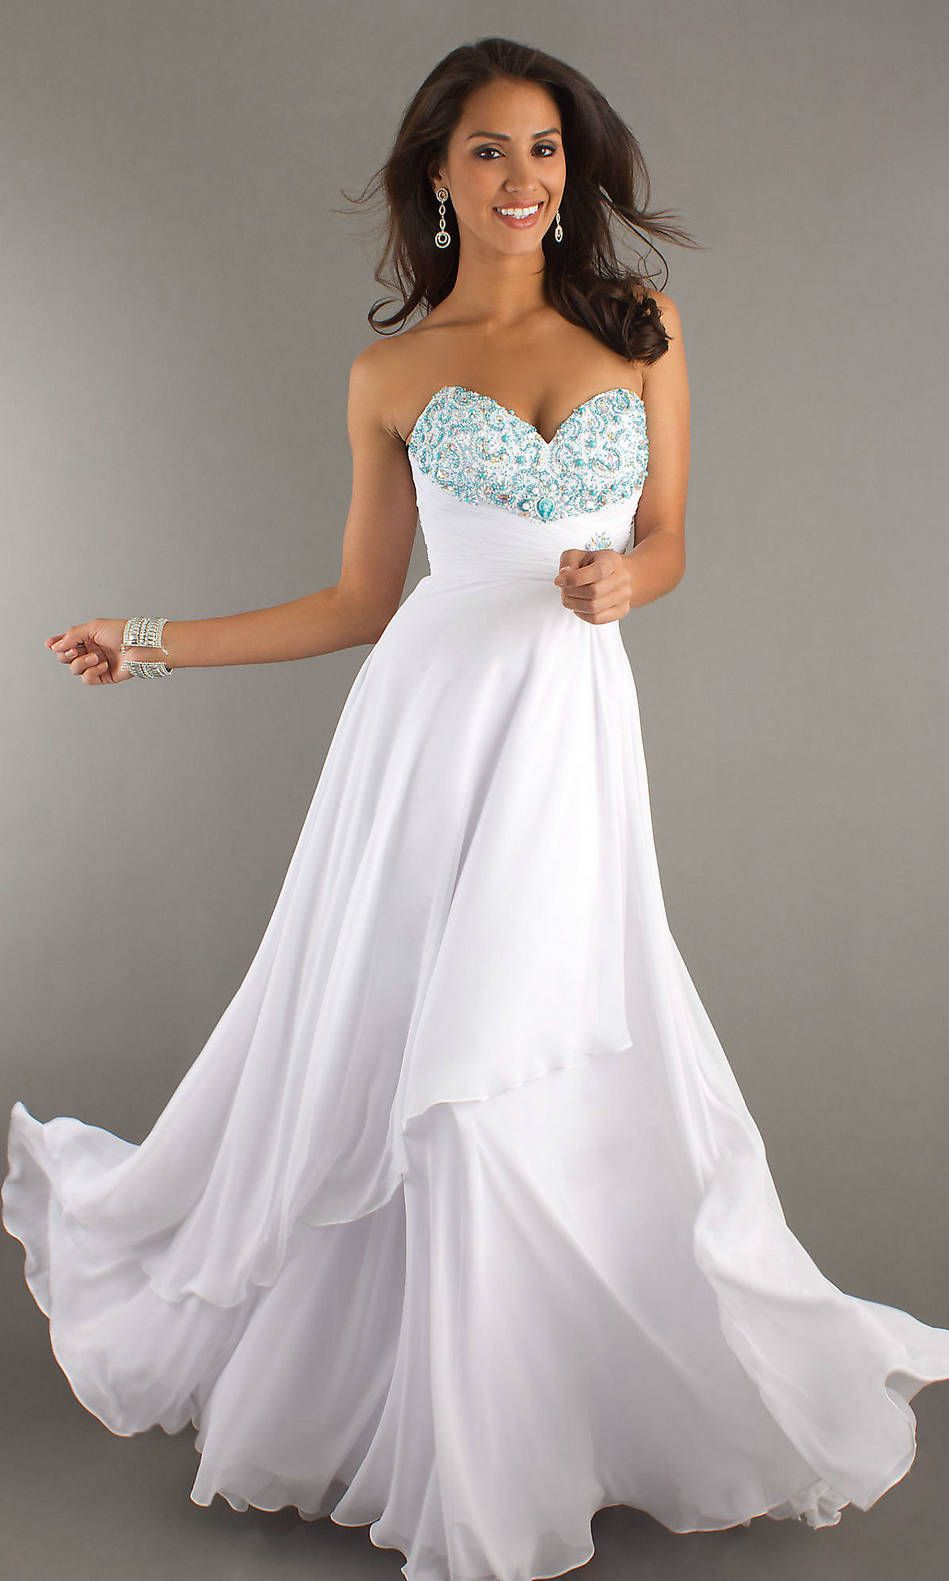 1000  images about White Prom Dresses on Pinterest | Embellished ...